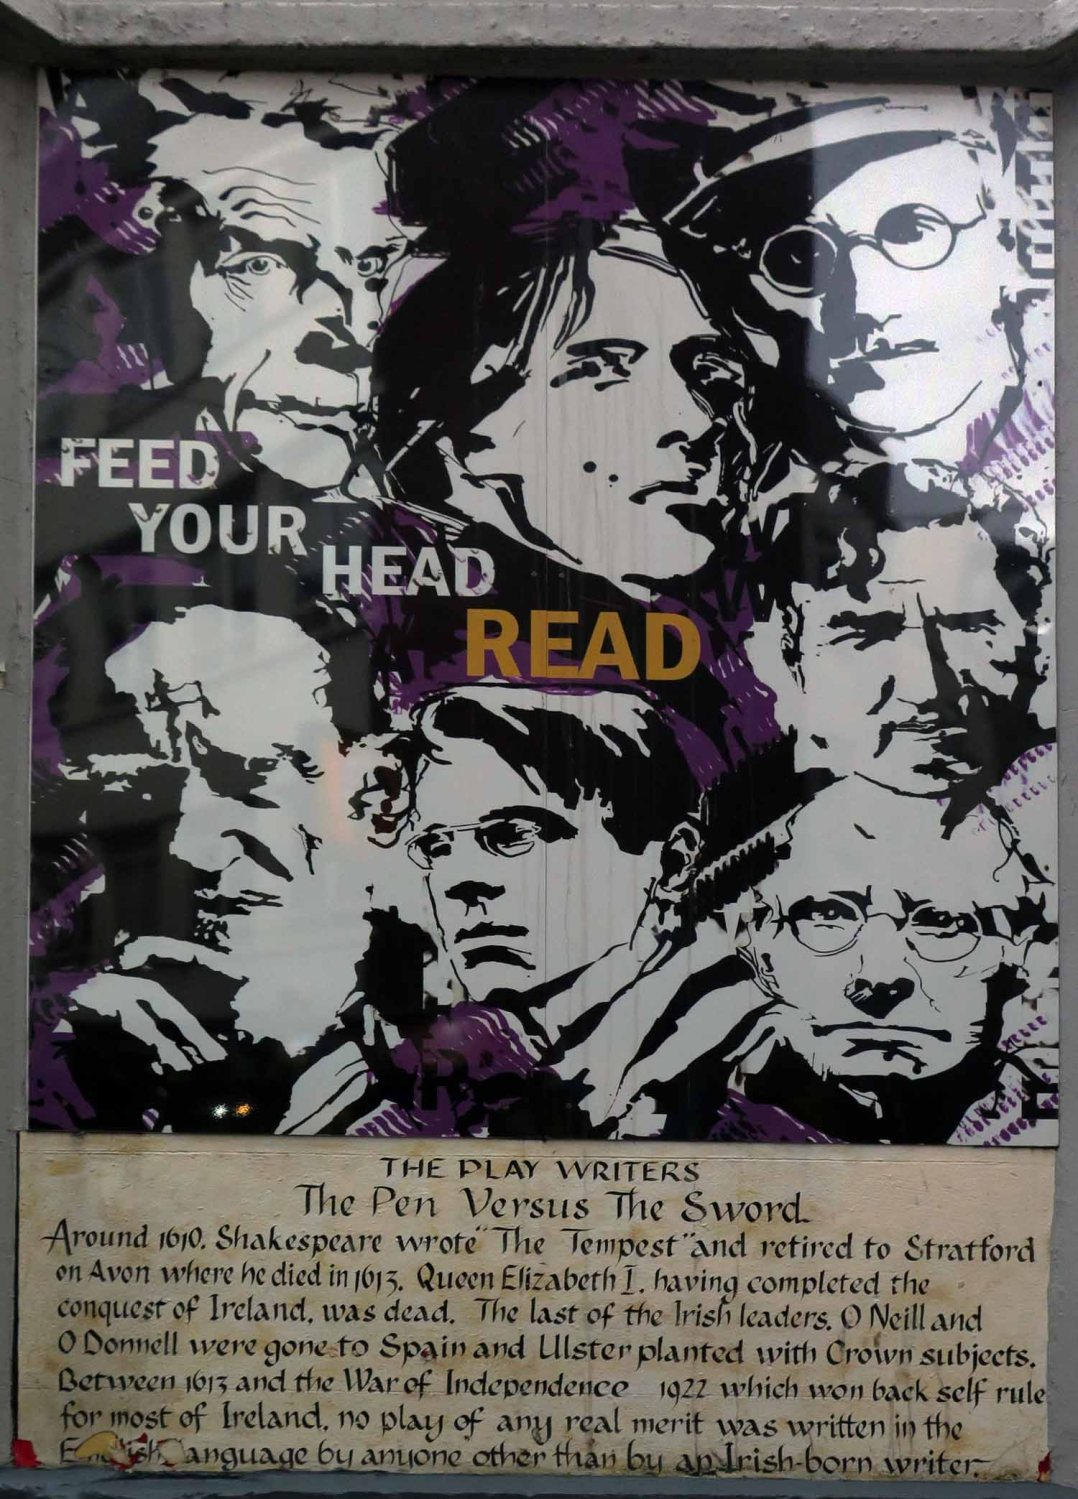 Ireland-Dublin-Feed-Your-Head-Read